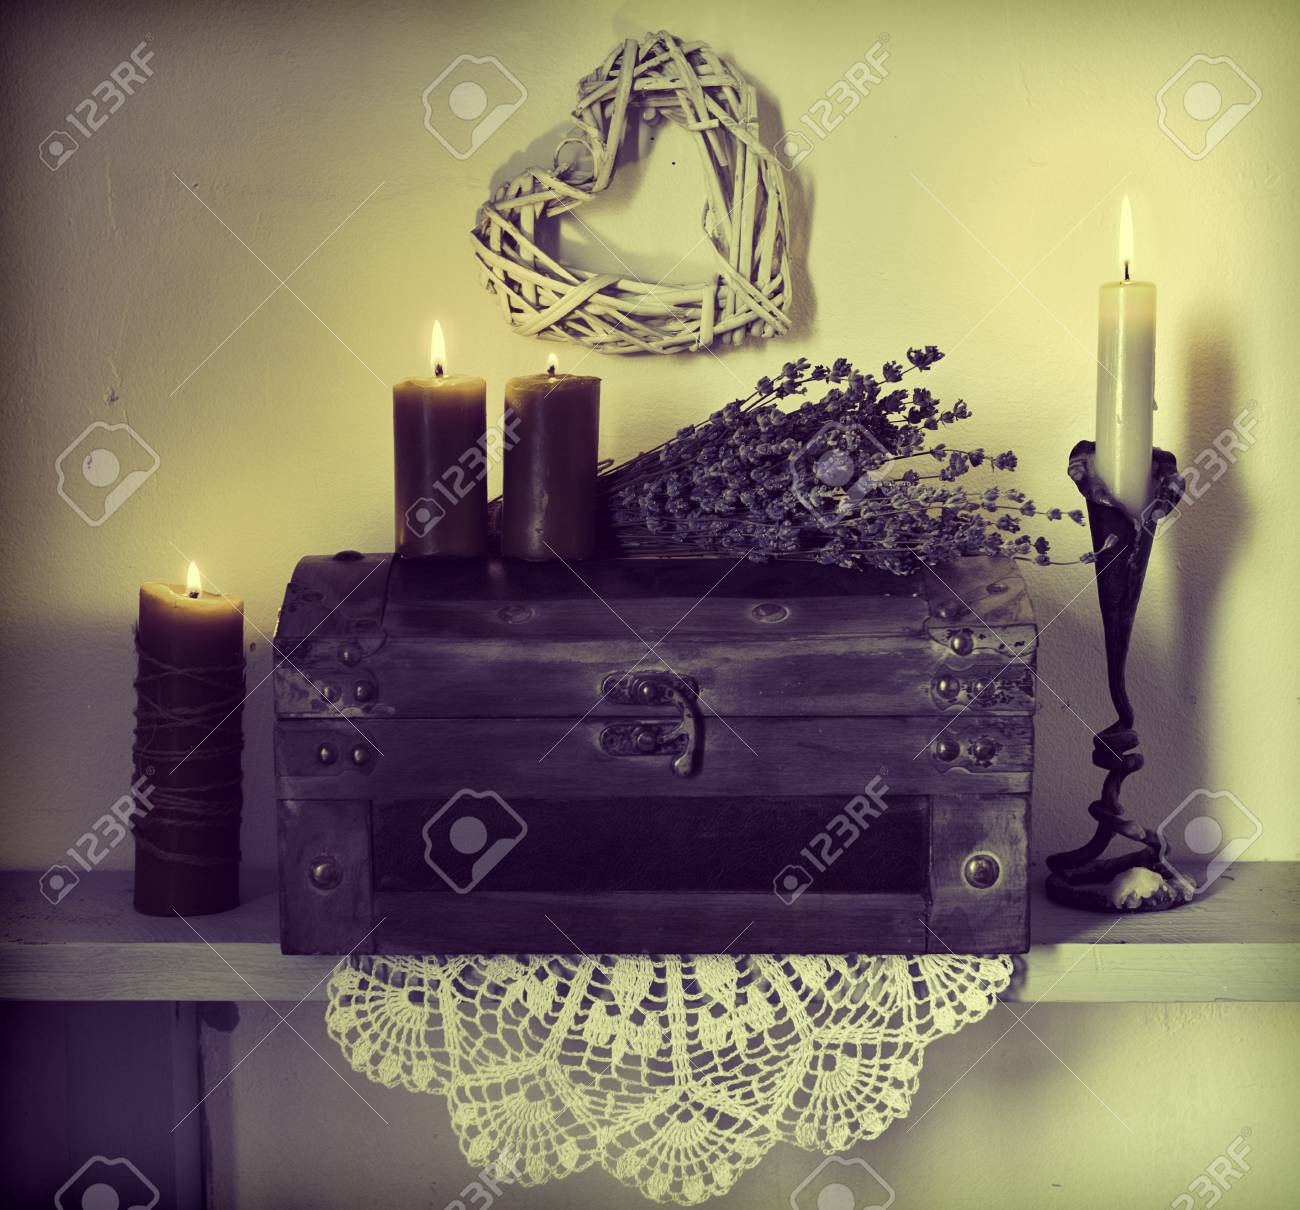 Candles Lavender Flowers Old Wooden Box And Heart Symbol On